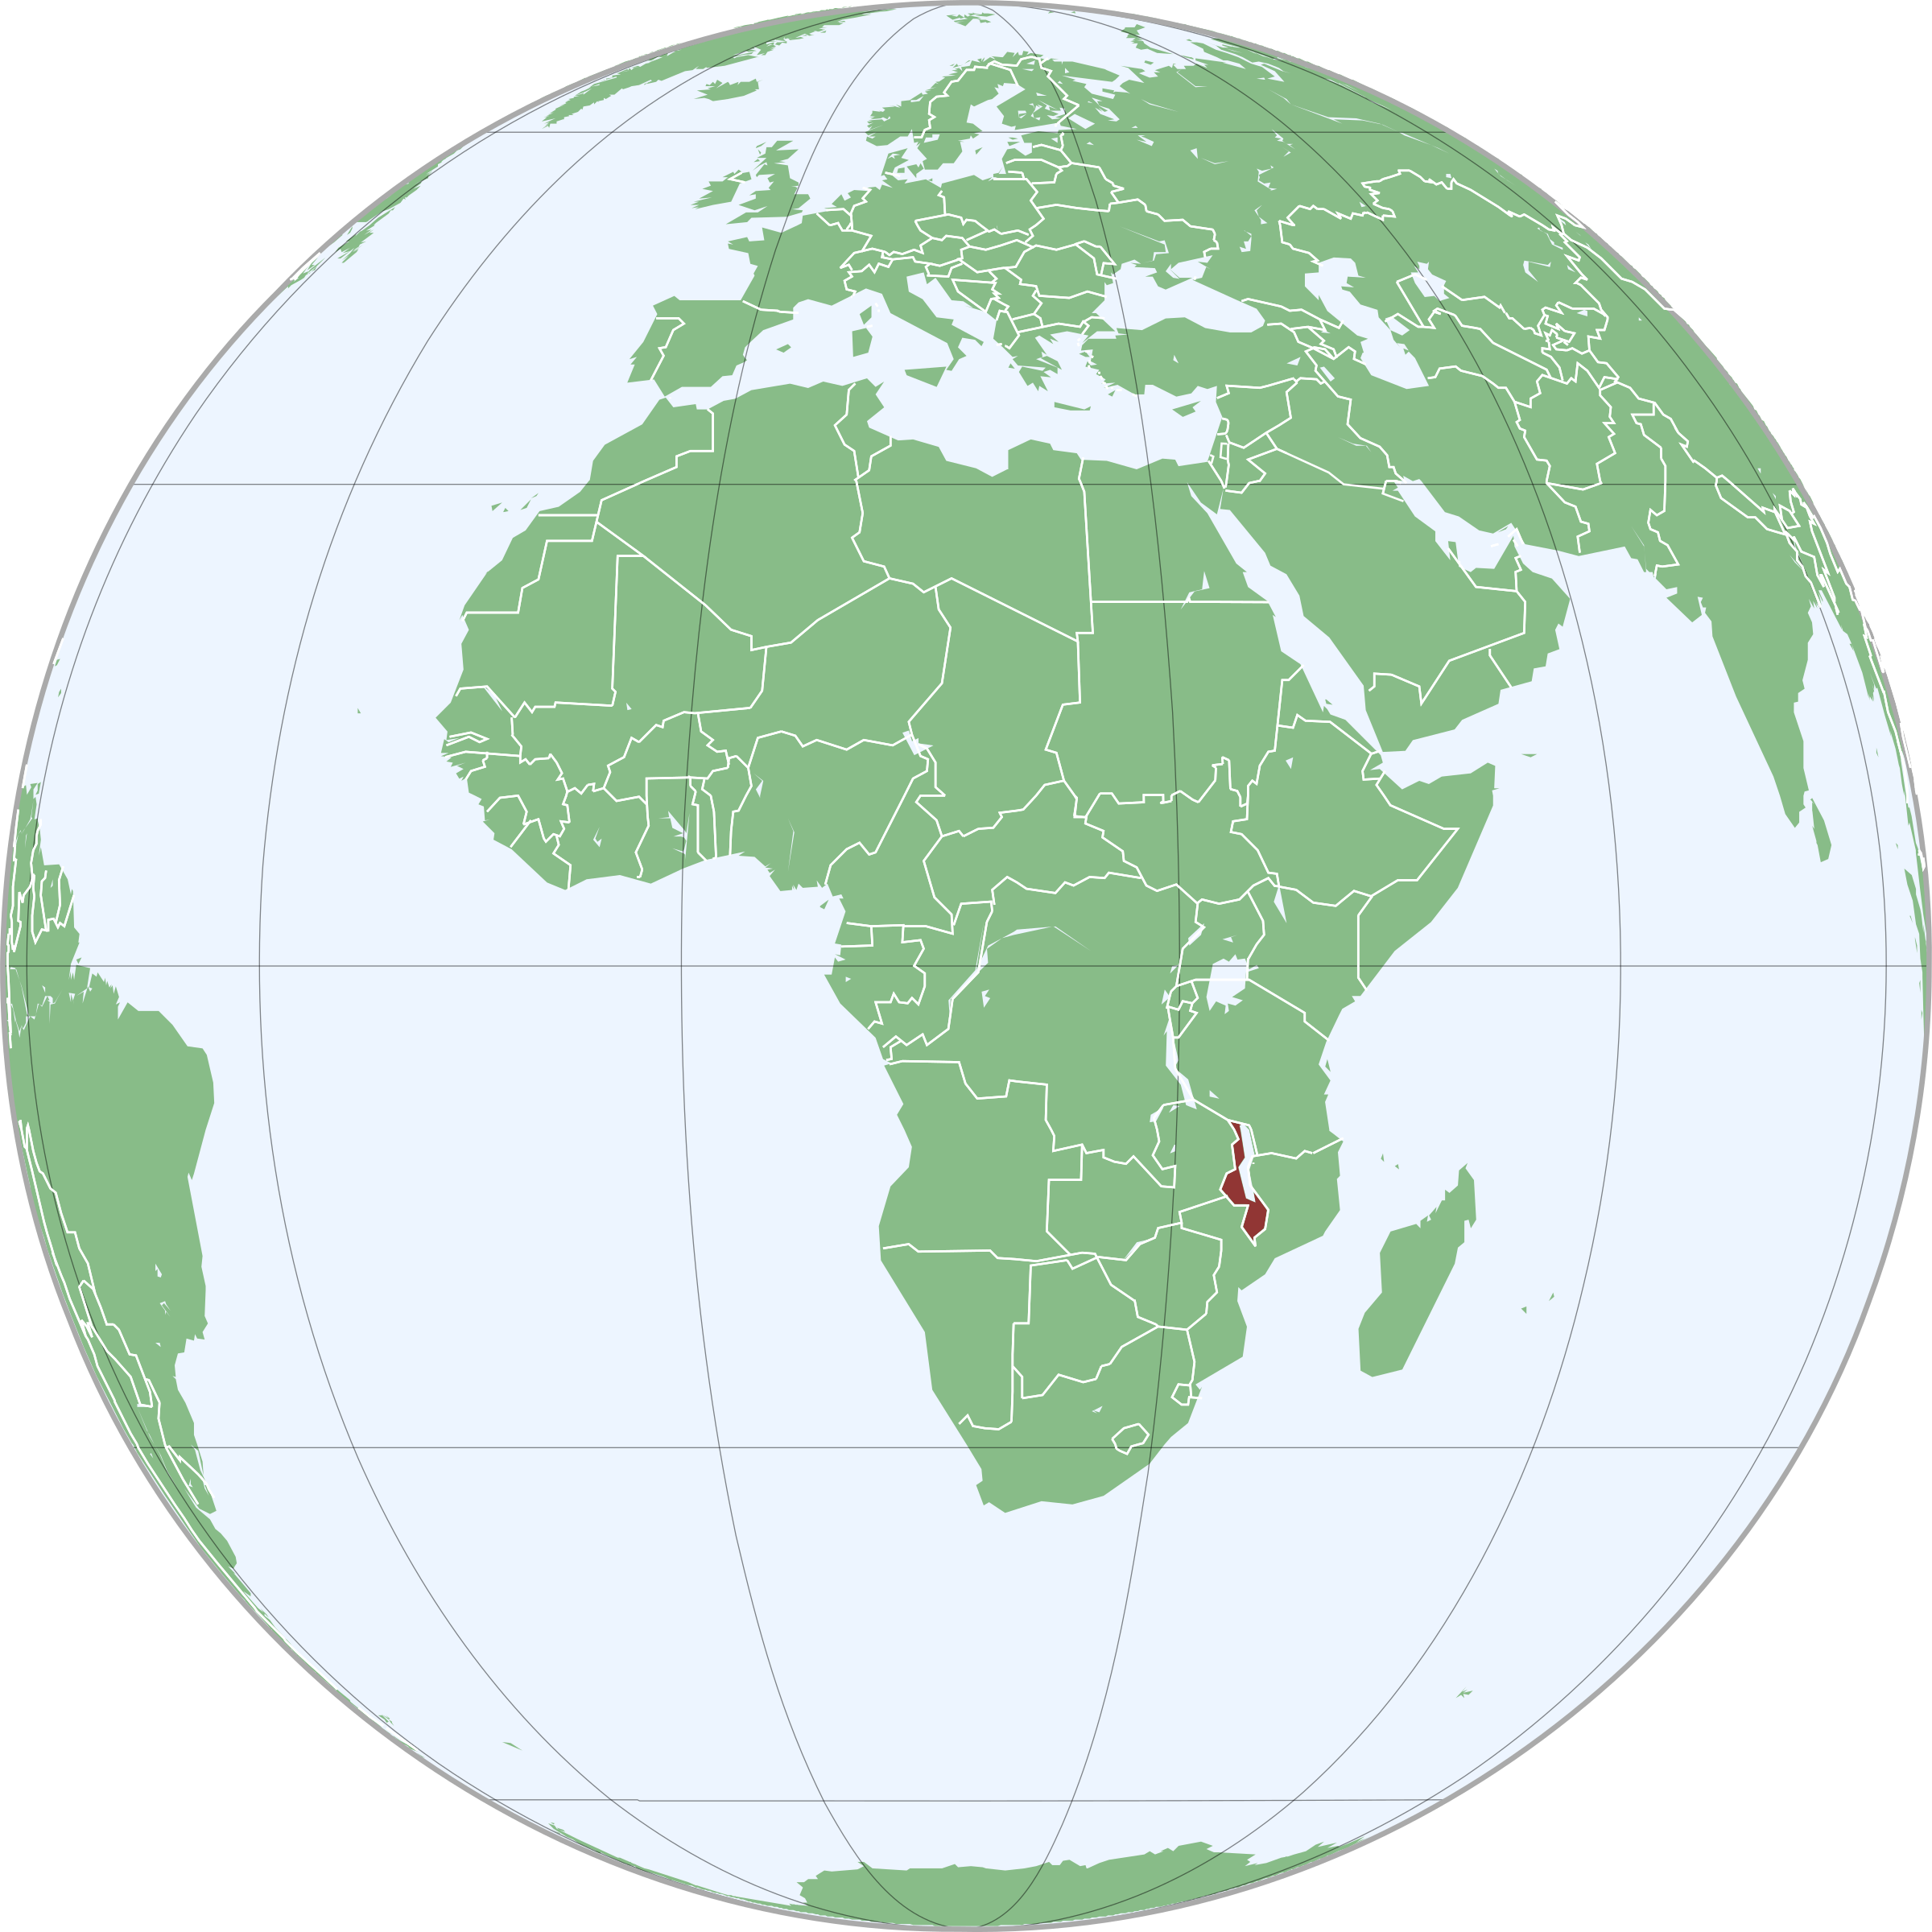 Map of Malawi in Africa by j4p4n